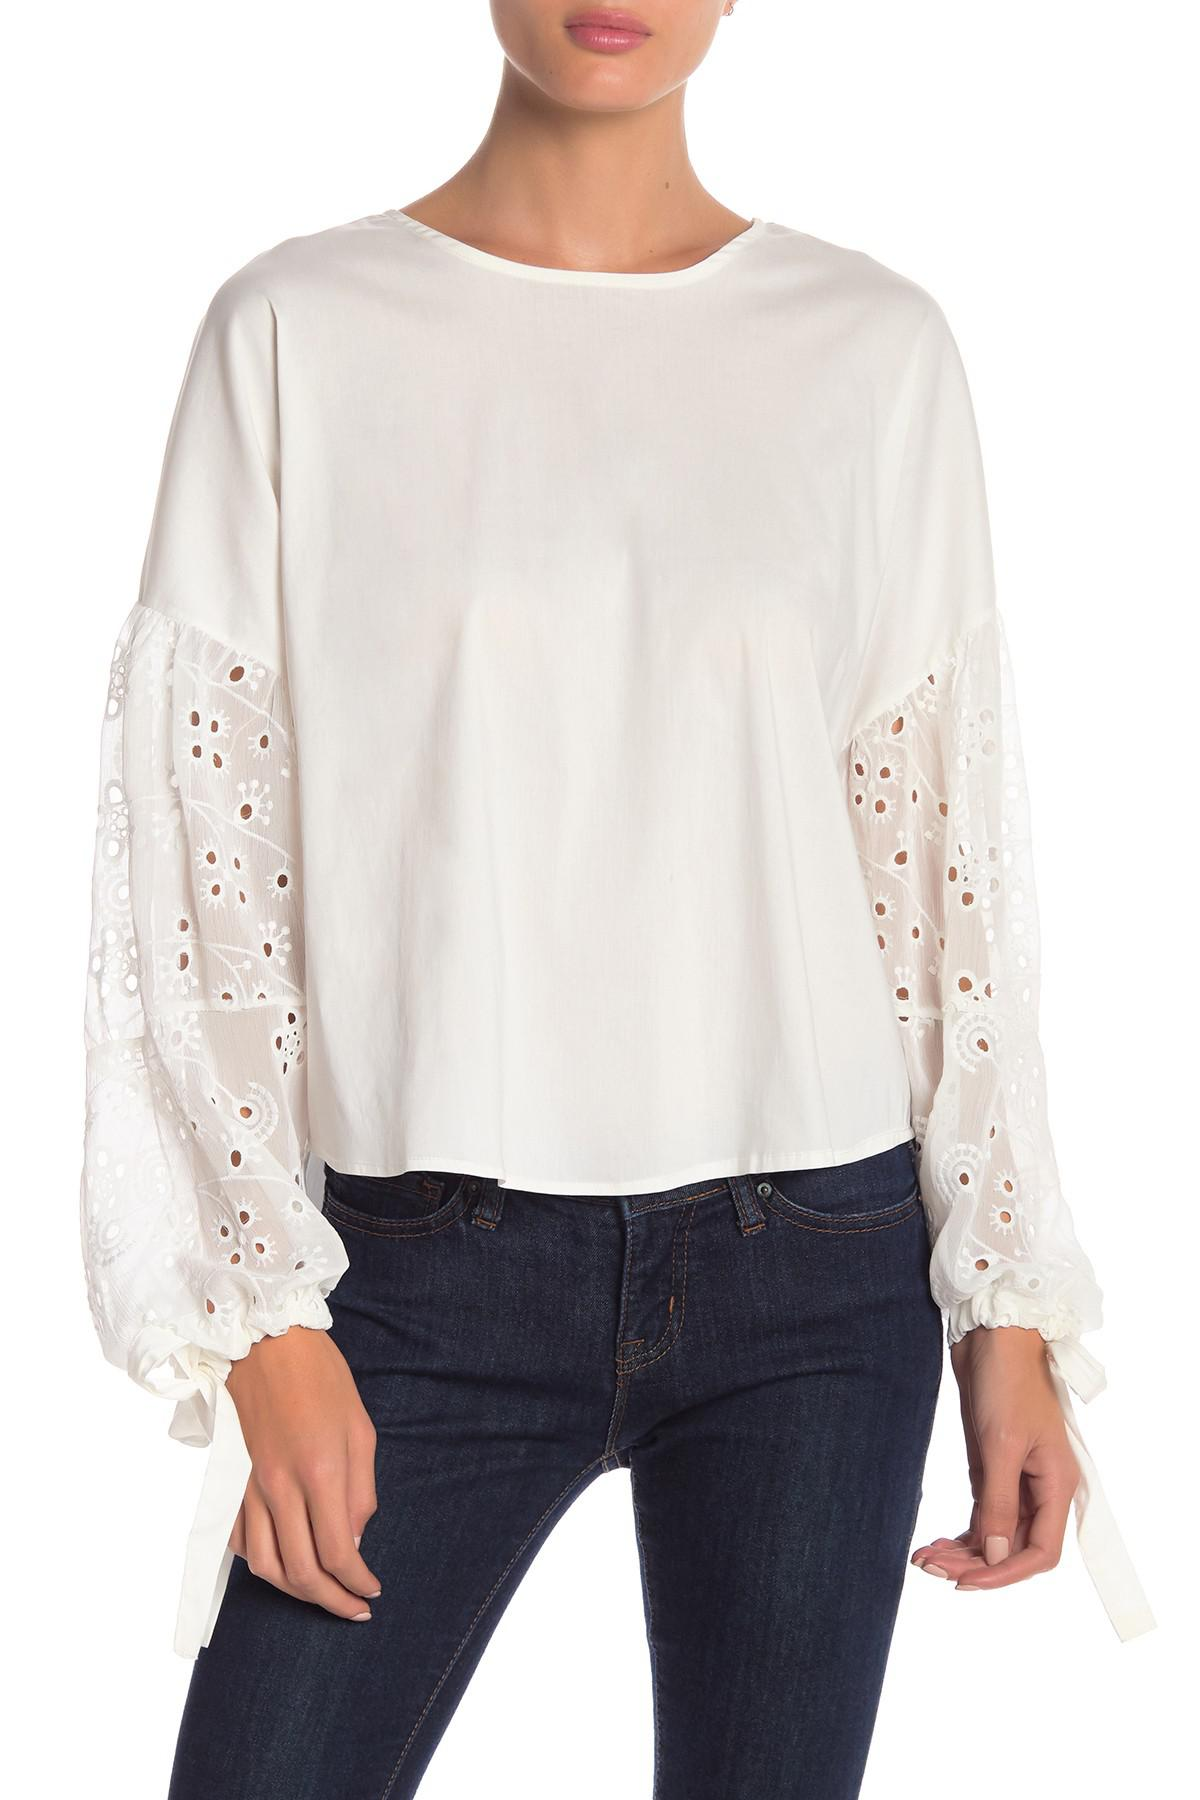 58091436a4e9f Lyst - Bishop + Young Chase Blouse in White